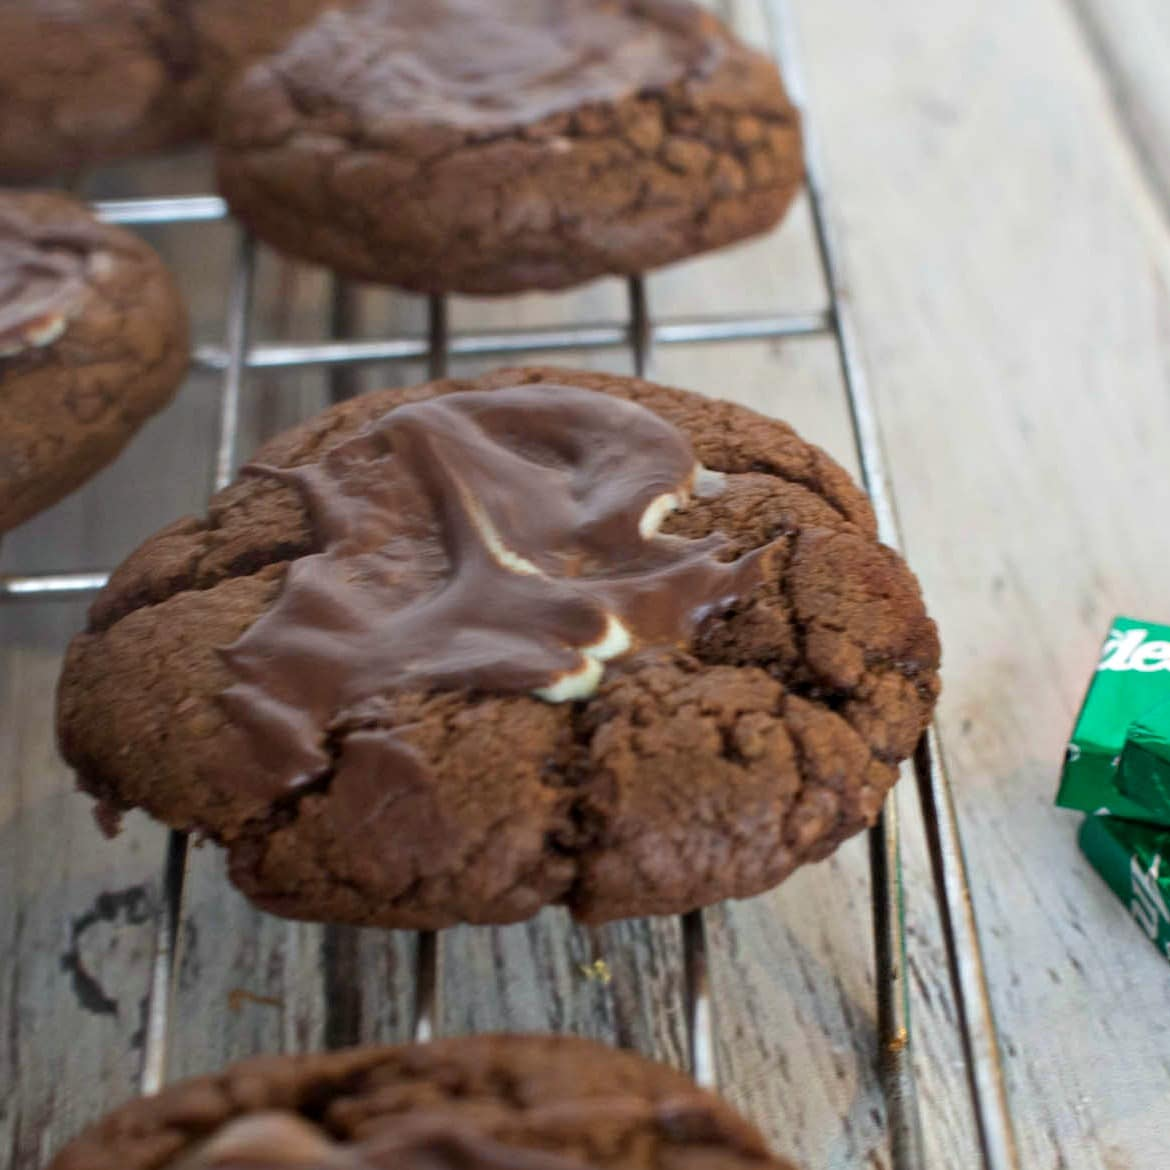 Andes Mint Cookies - Chocolate Cookies with Andes Mints melted on top of the cookie